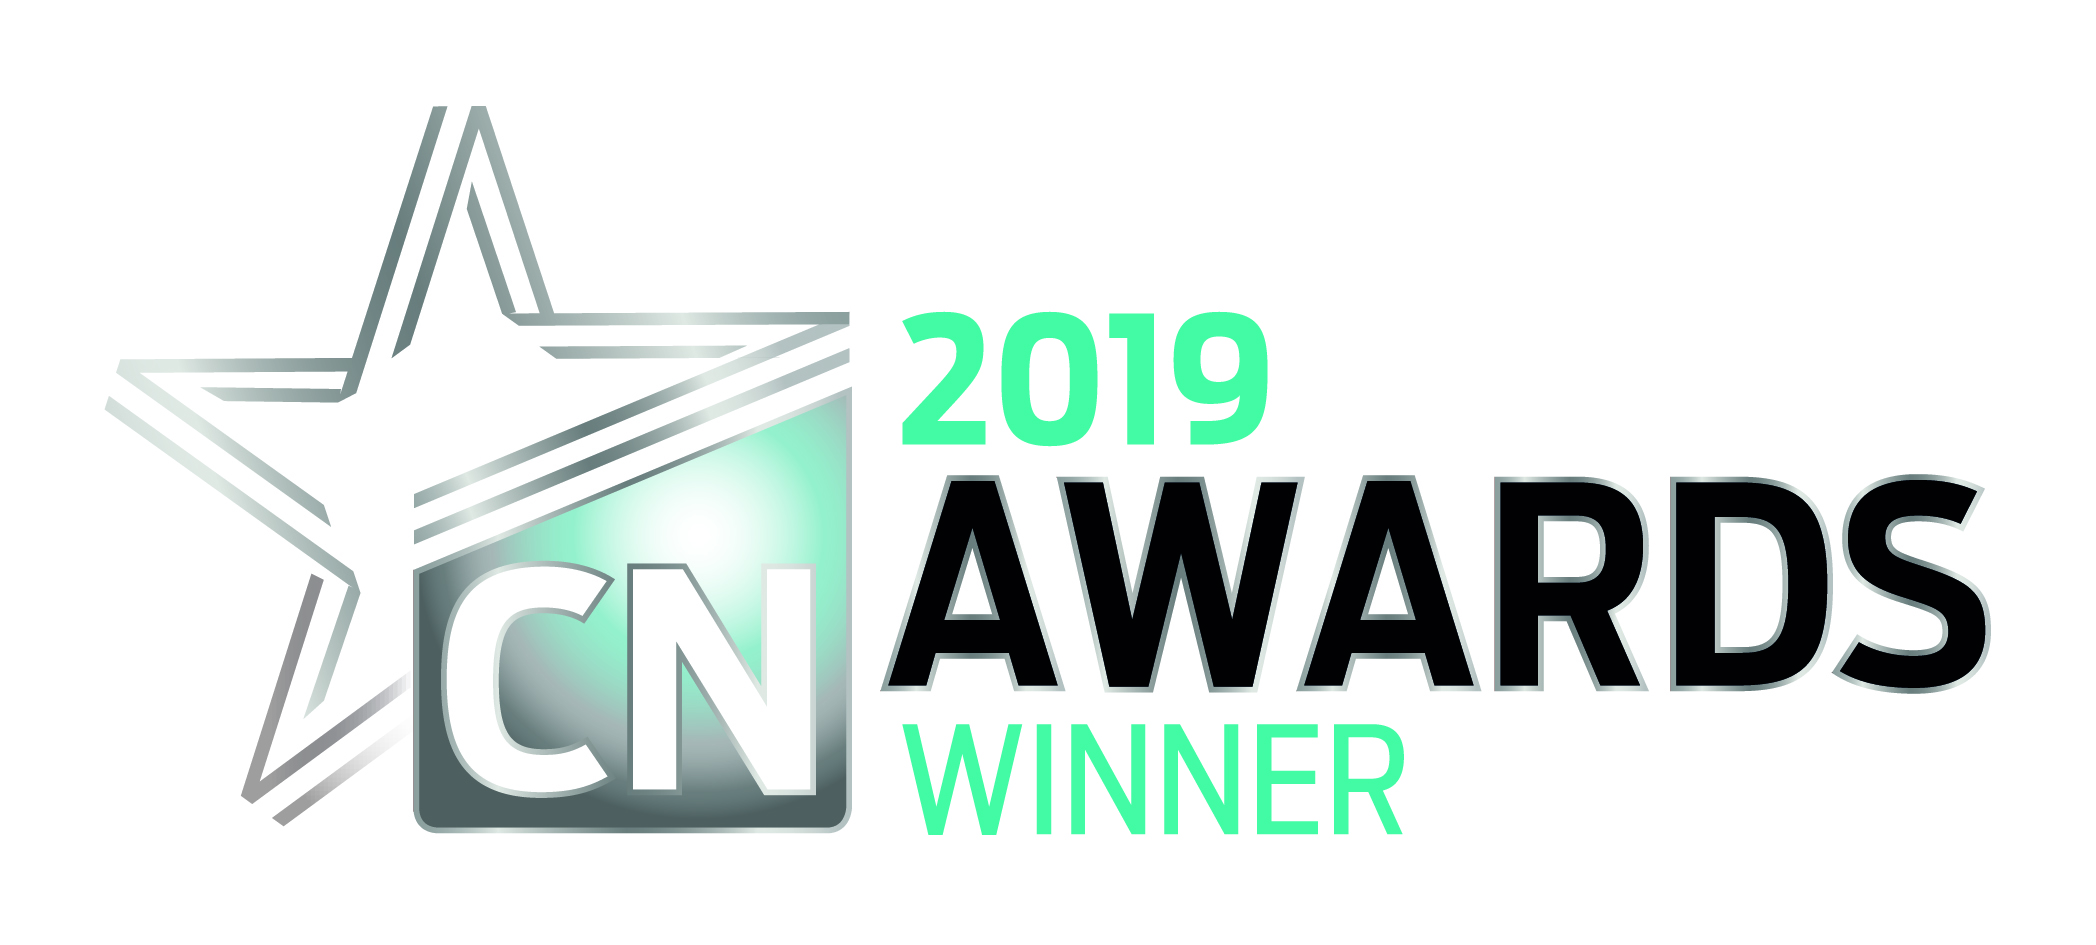 CN 2019 Awards Logo - Winner HR.jpg